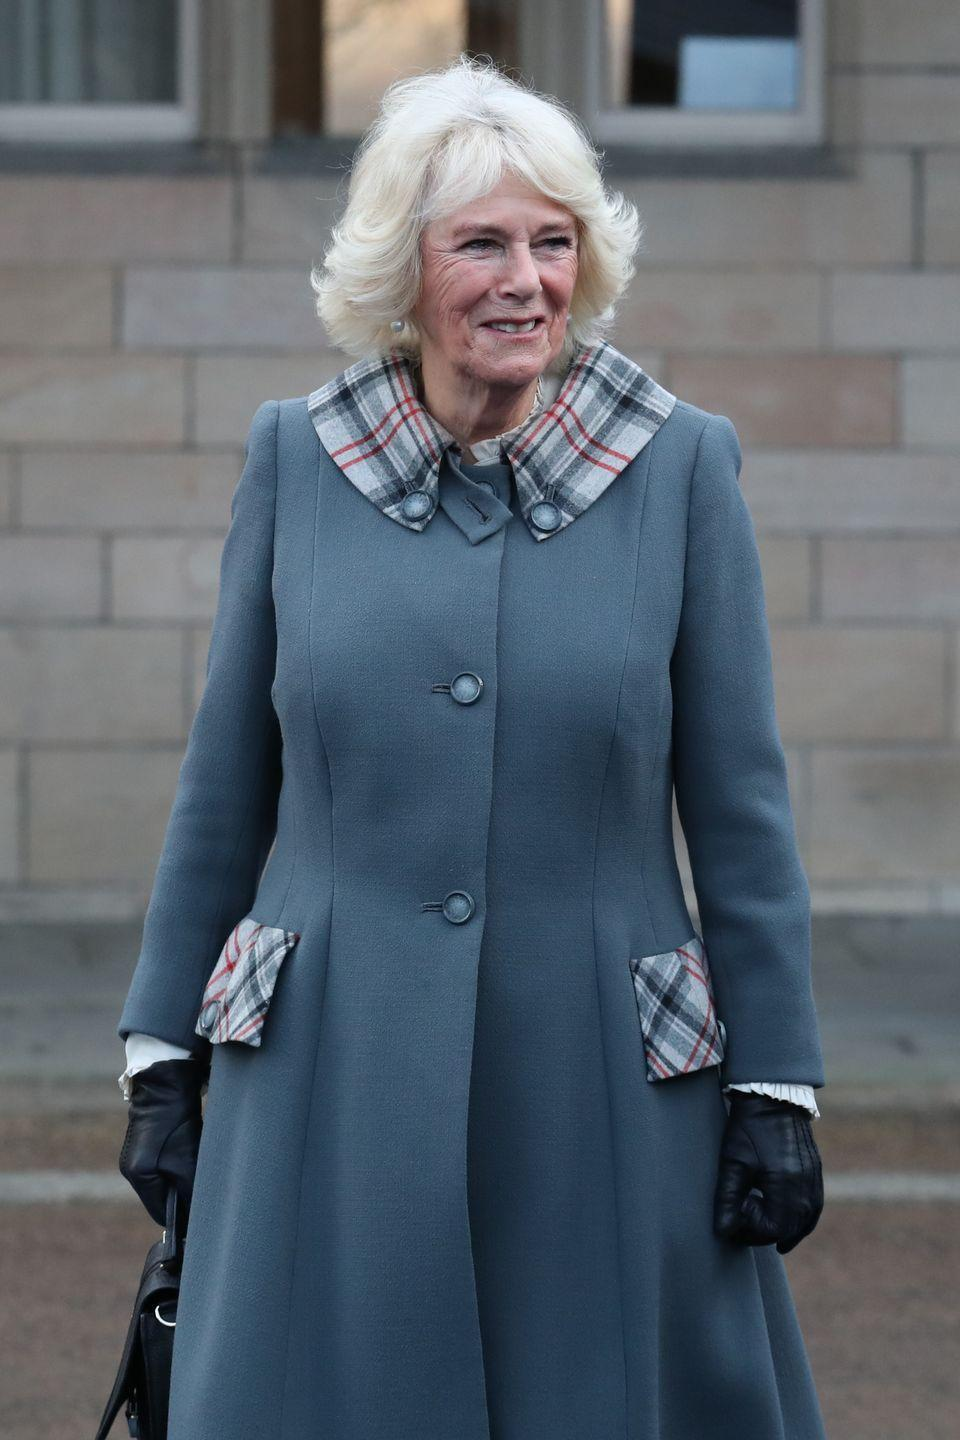 <p>Camilla wore this adorable gray coat with plaid detailing to the University of Aberdeen. There, she presented an honorary degree to her sister-in-law, the Princess Royal. </p>